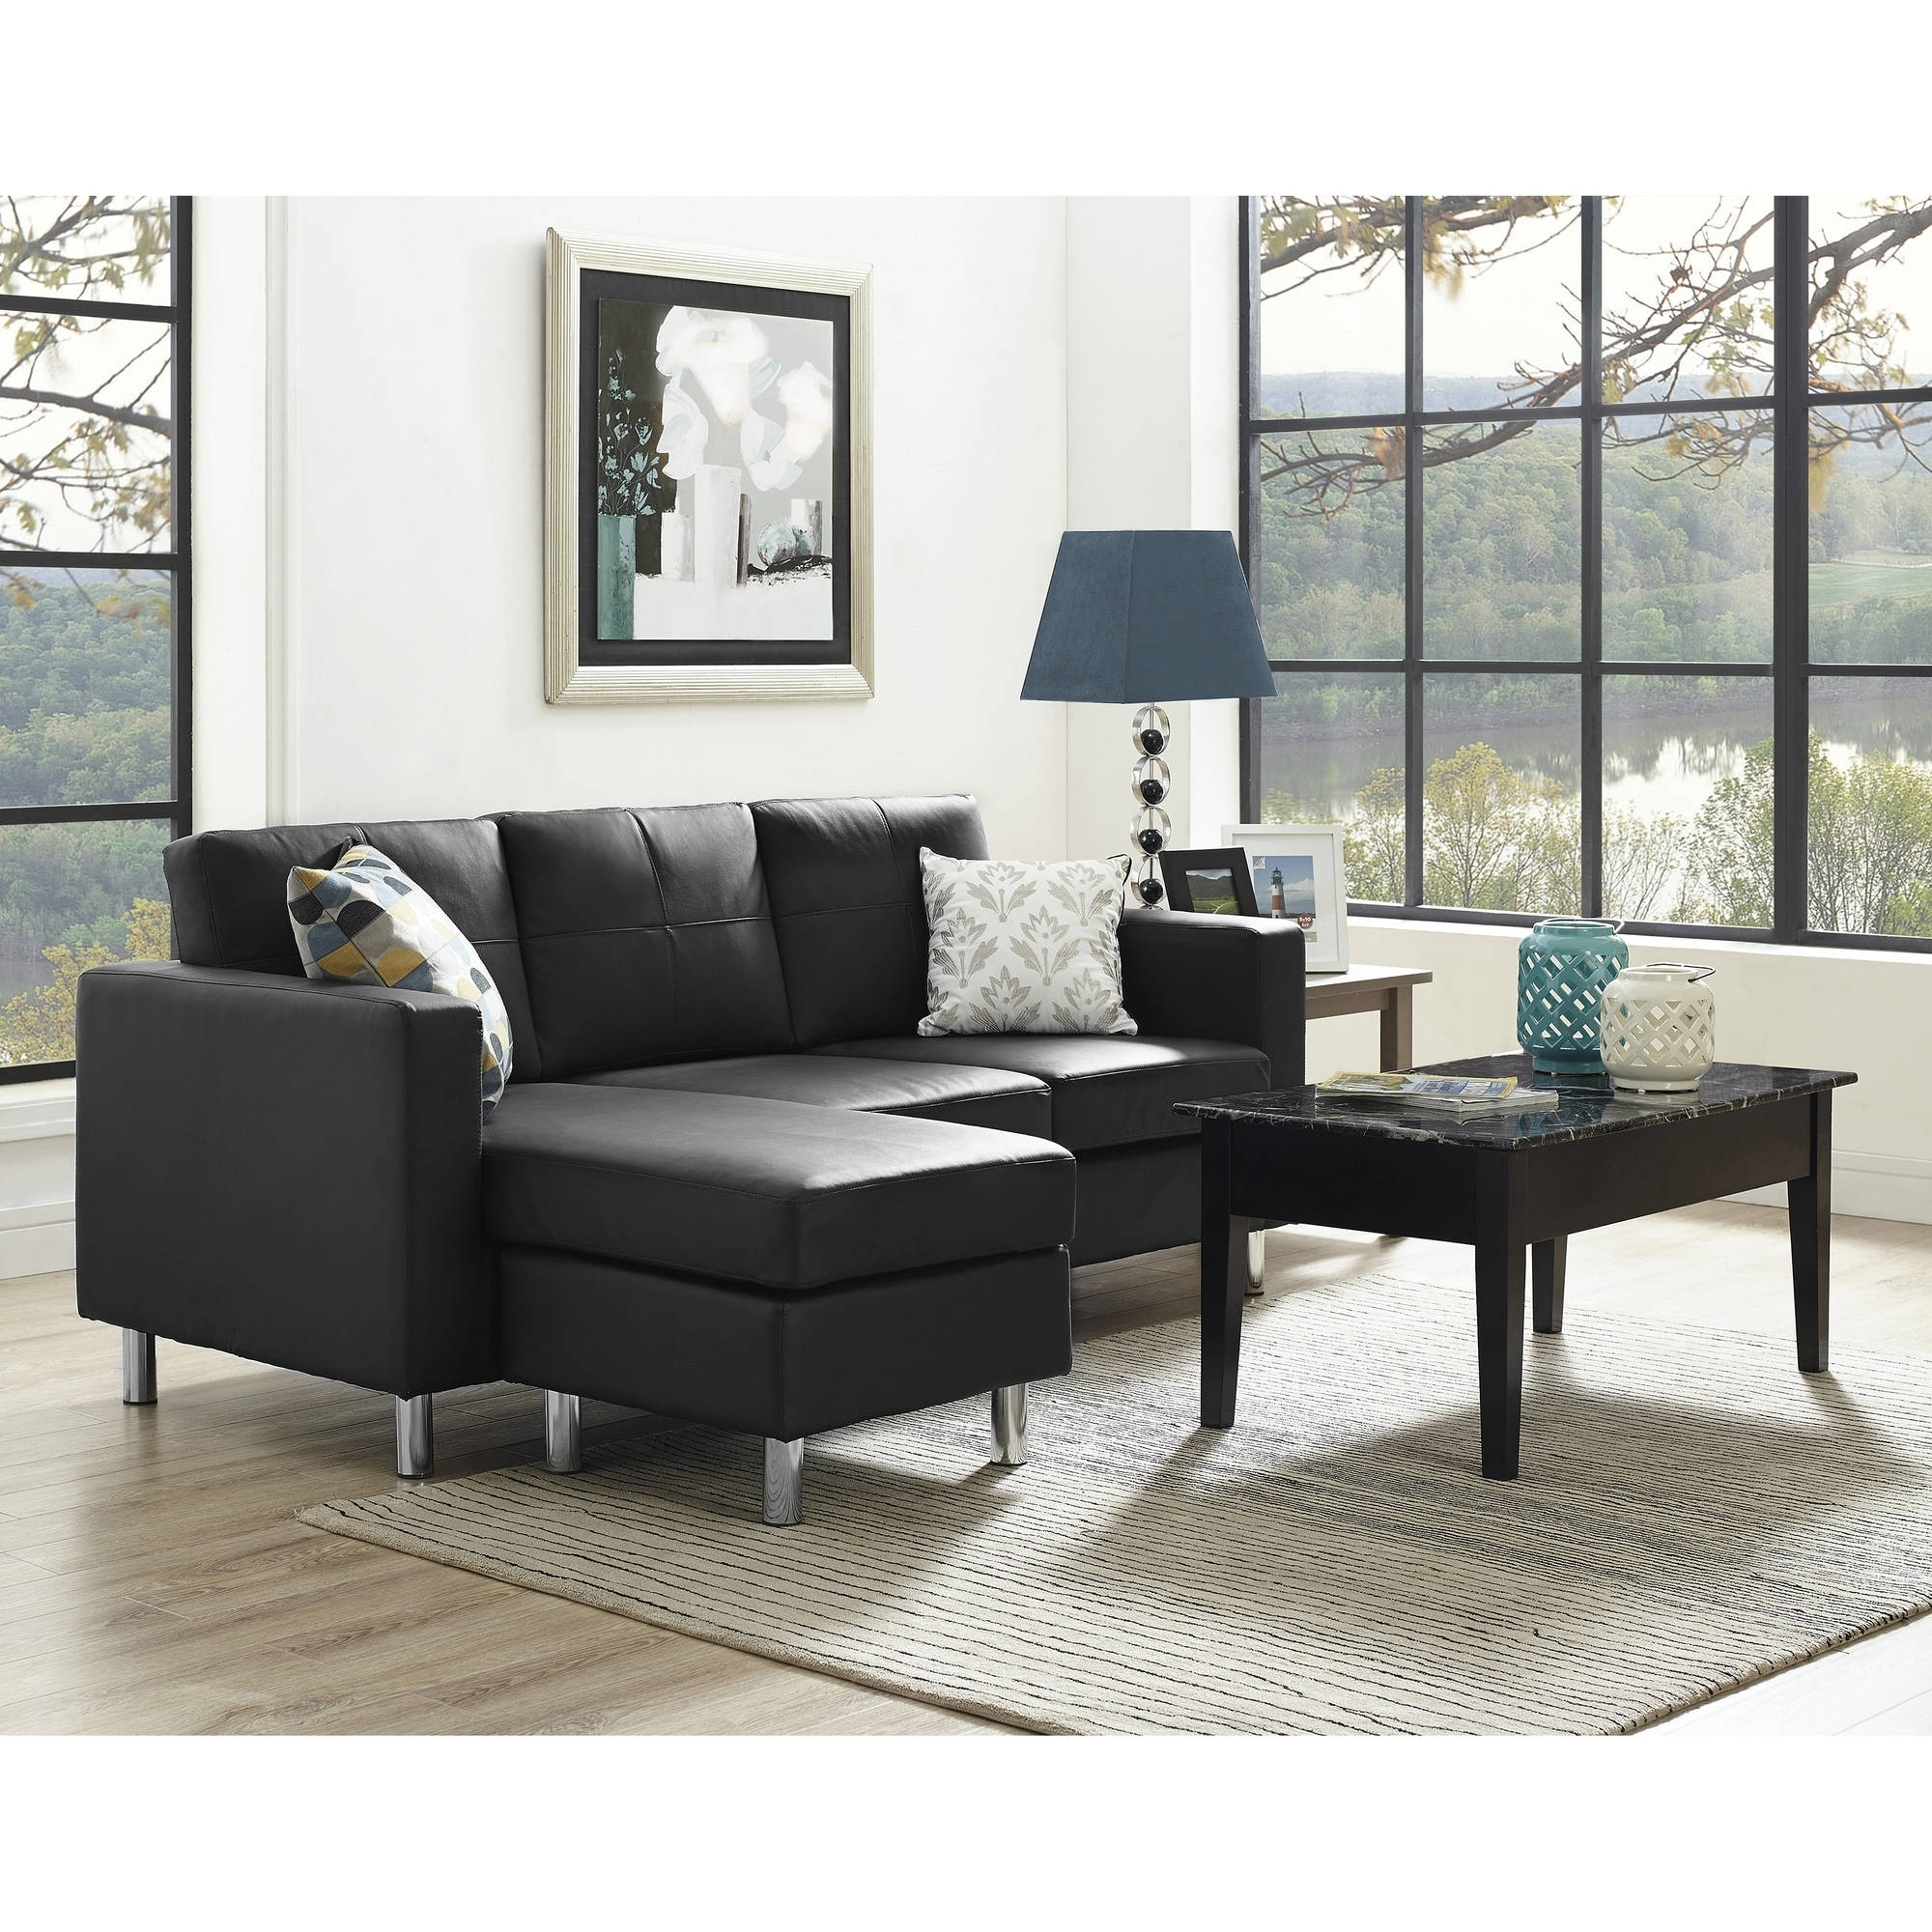 Small Spaces Configurable Sectional Sofa • Sectional Sofa Inside Sectional Sofas For Small Areas (View 5 of 10)